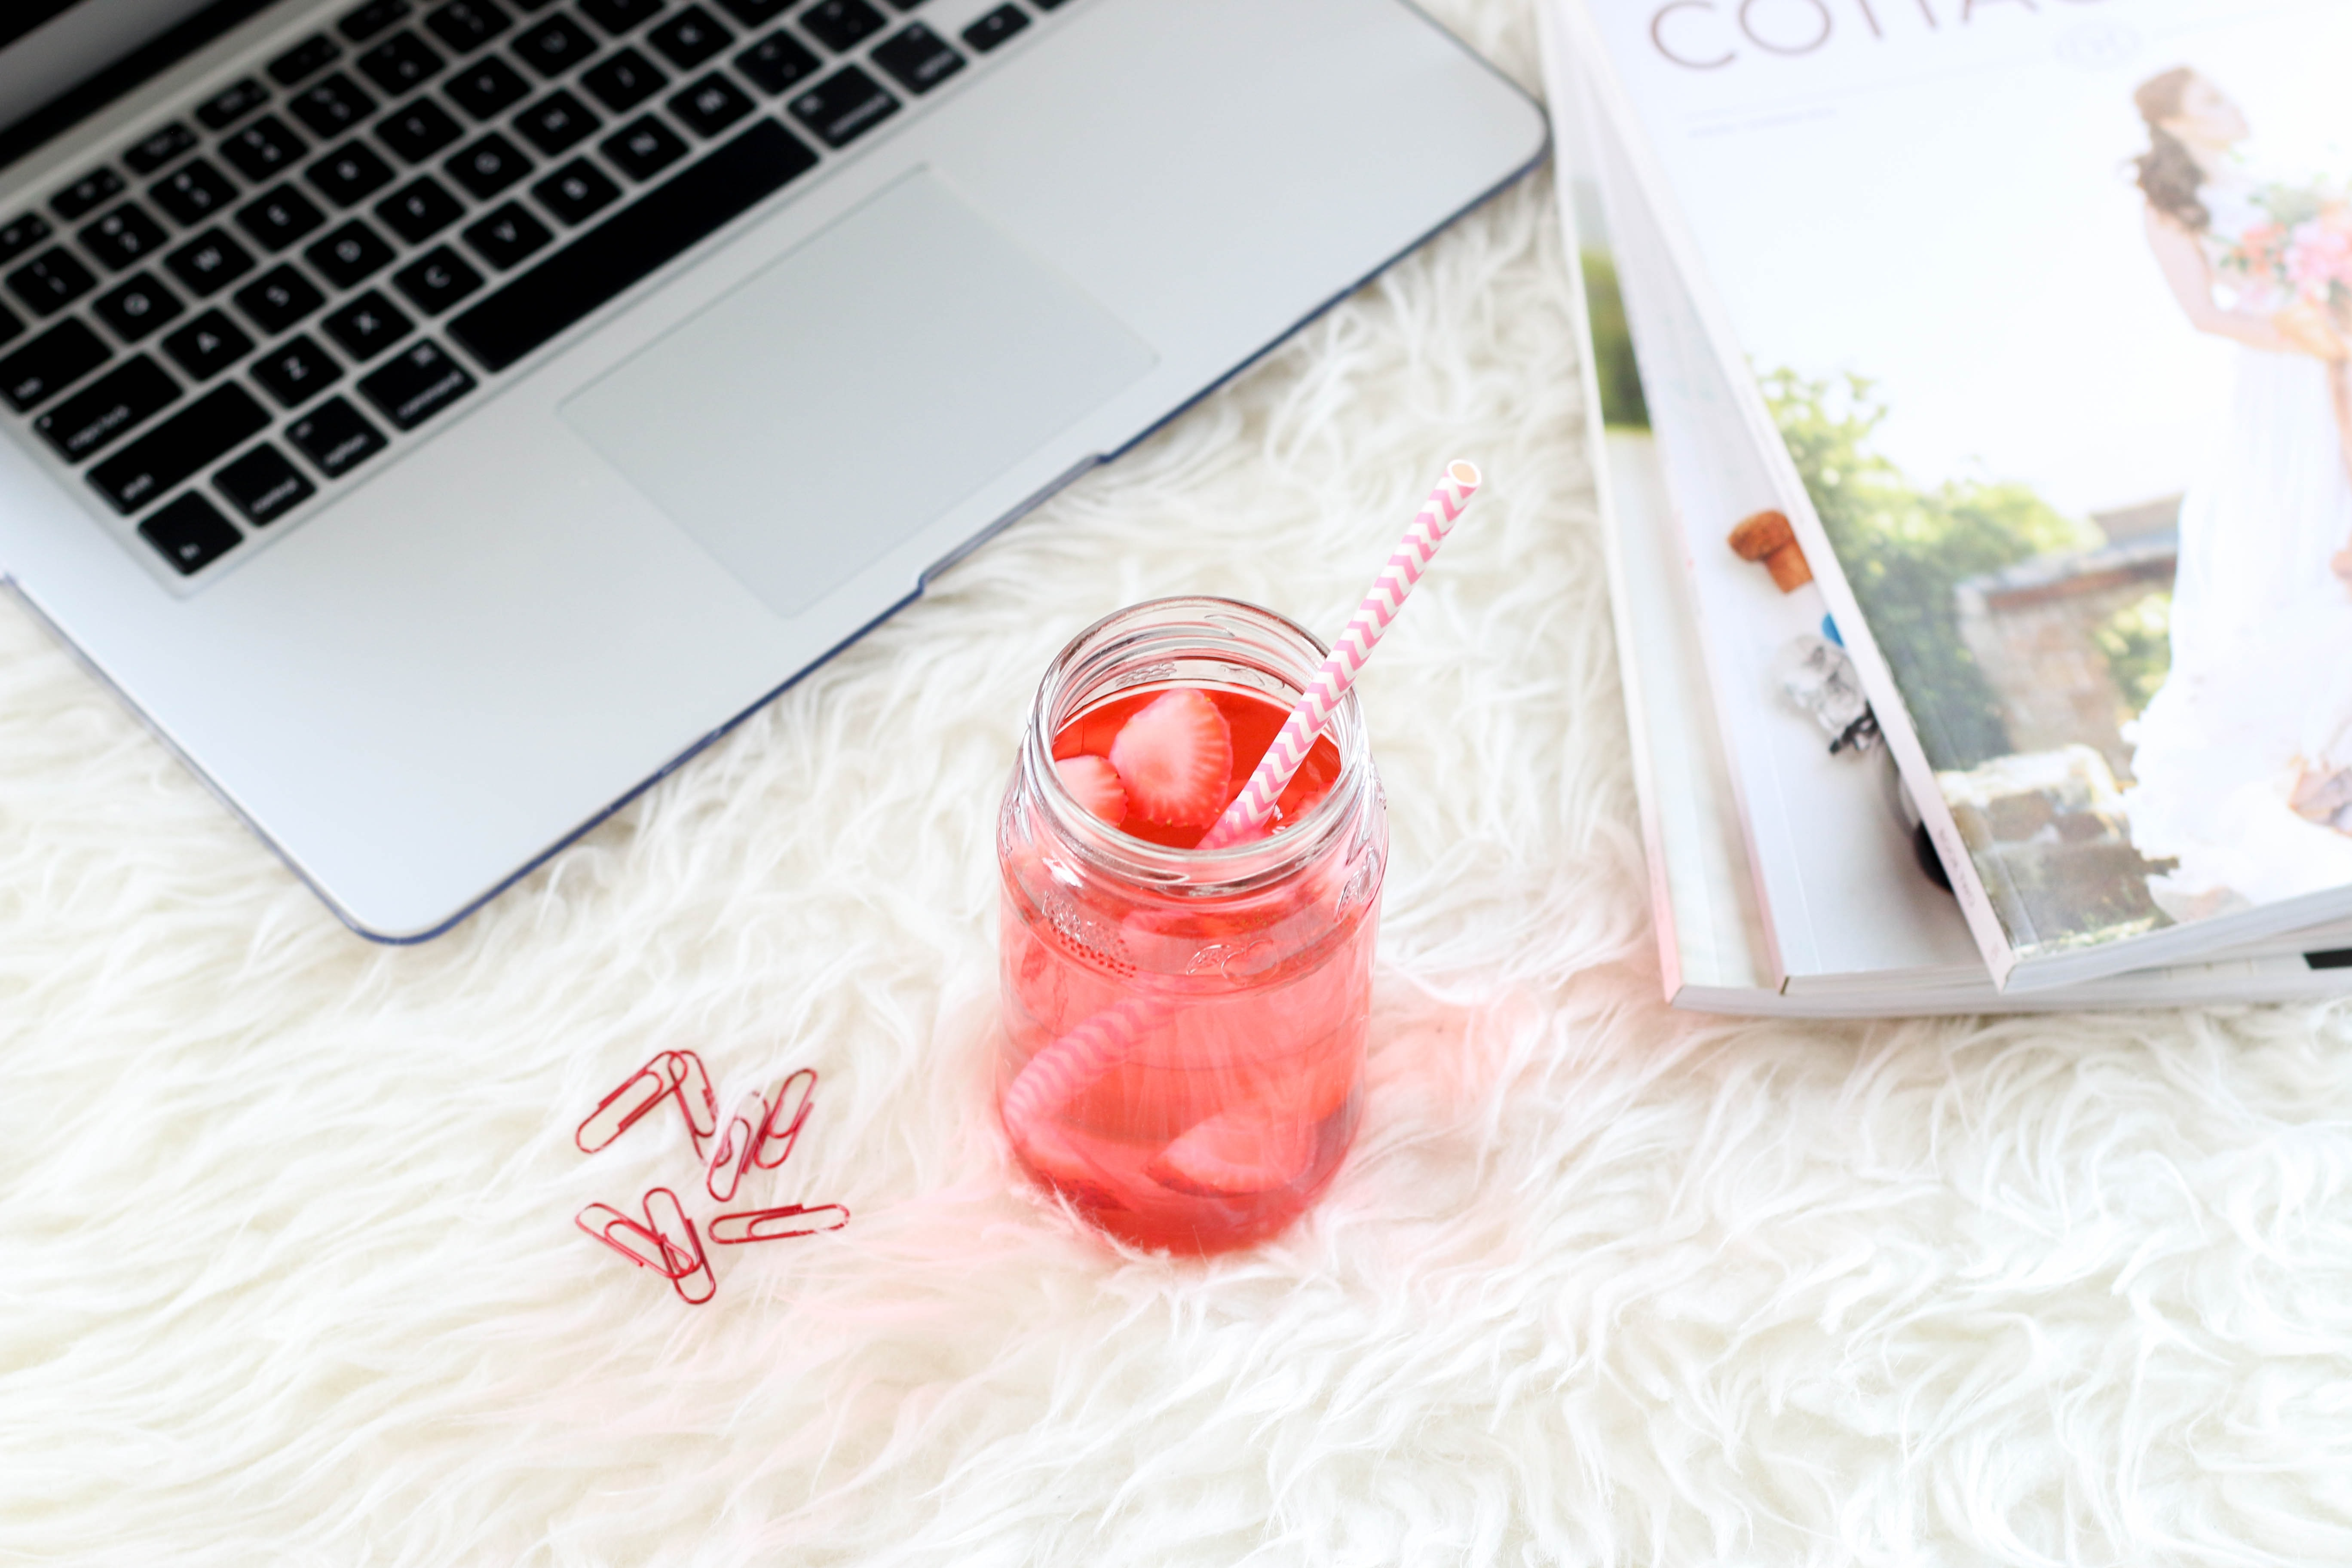 clear mason jar with red liquid and straw